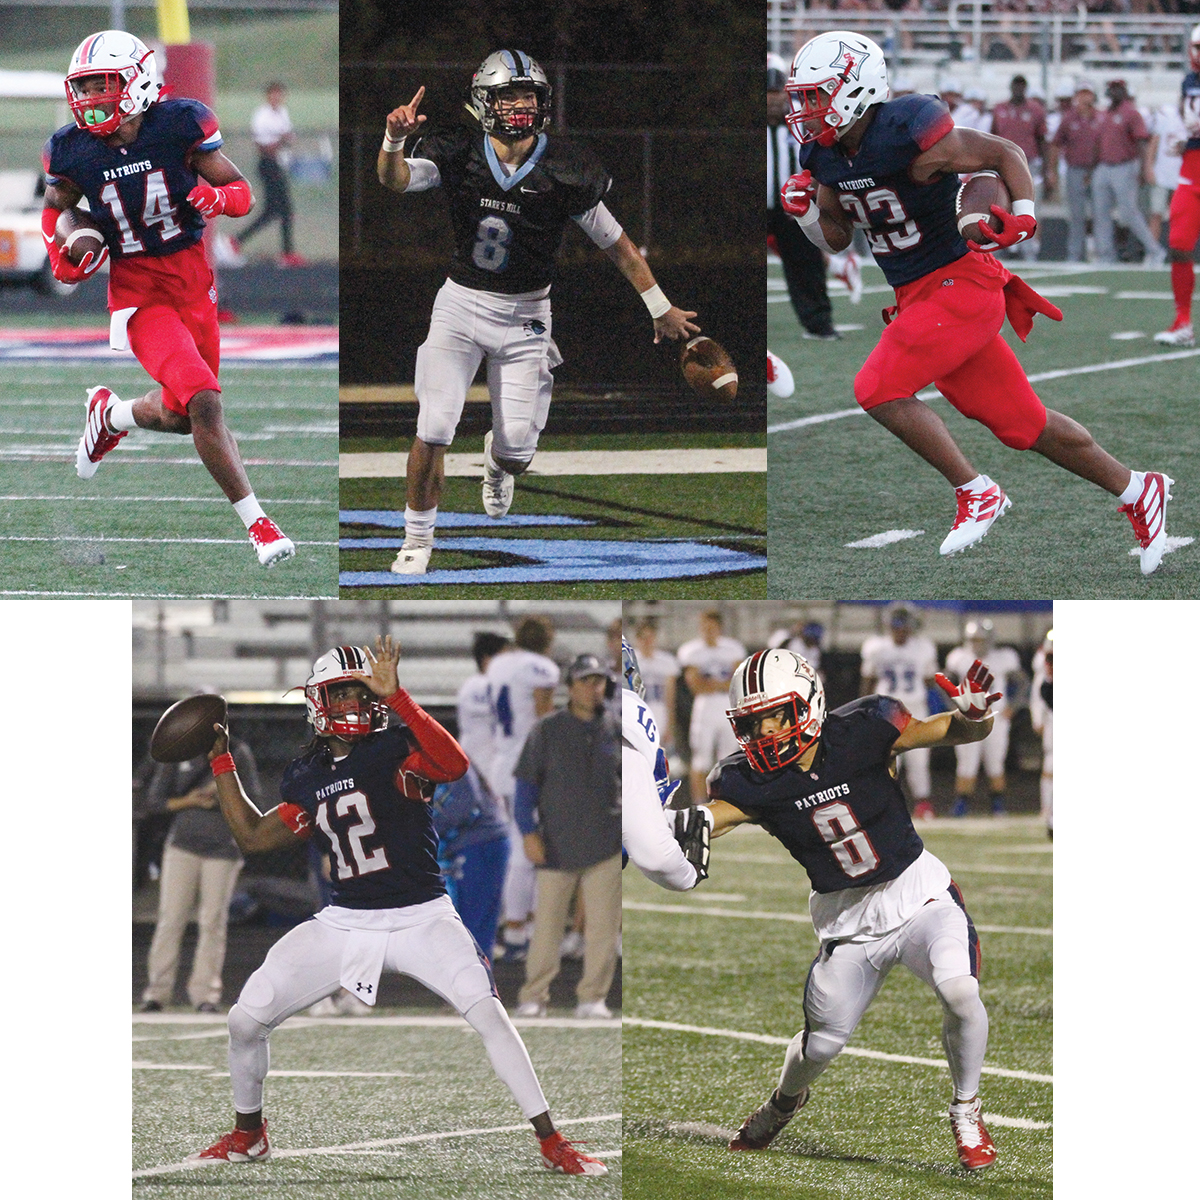 Introducing the 2019 All-County Football Team